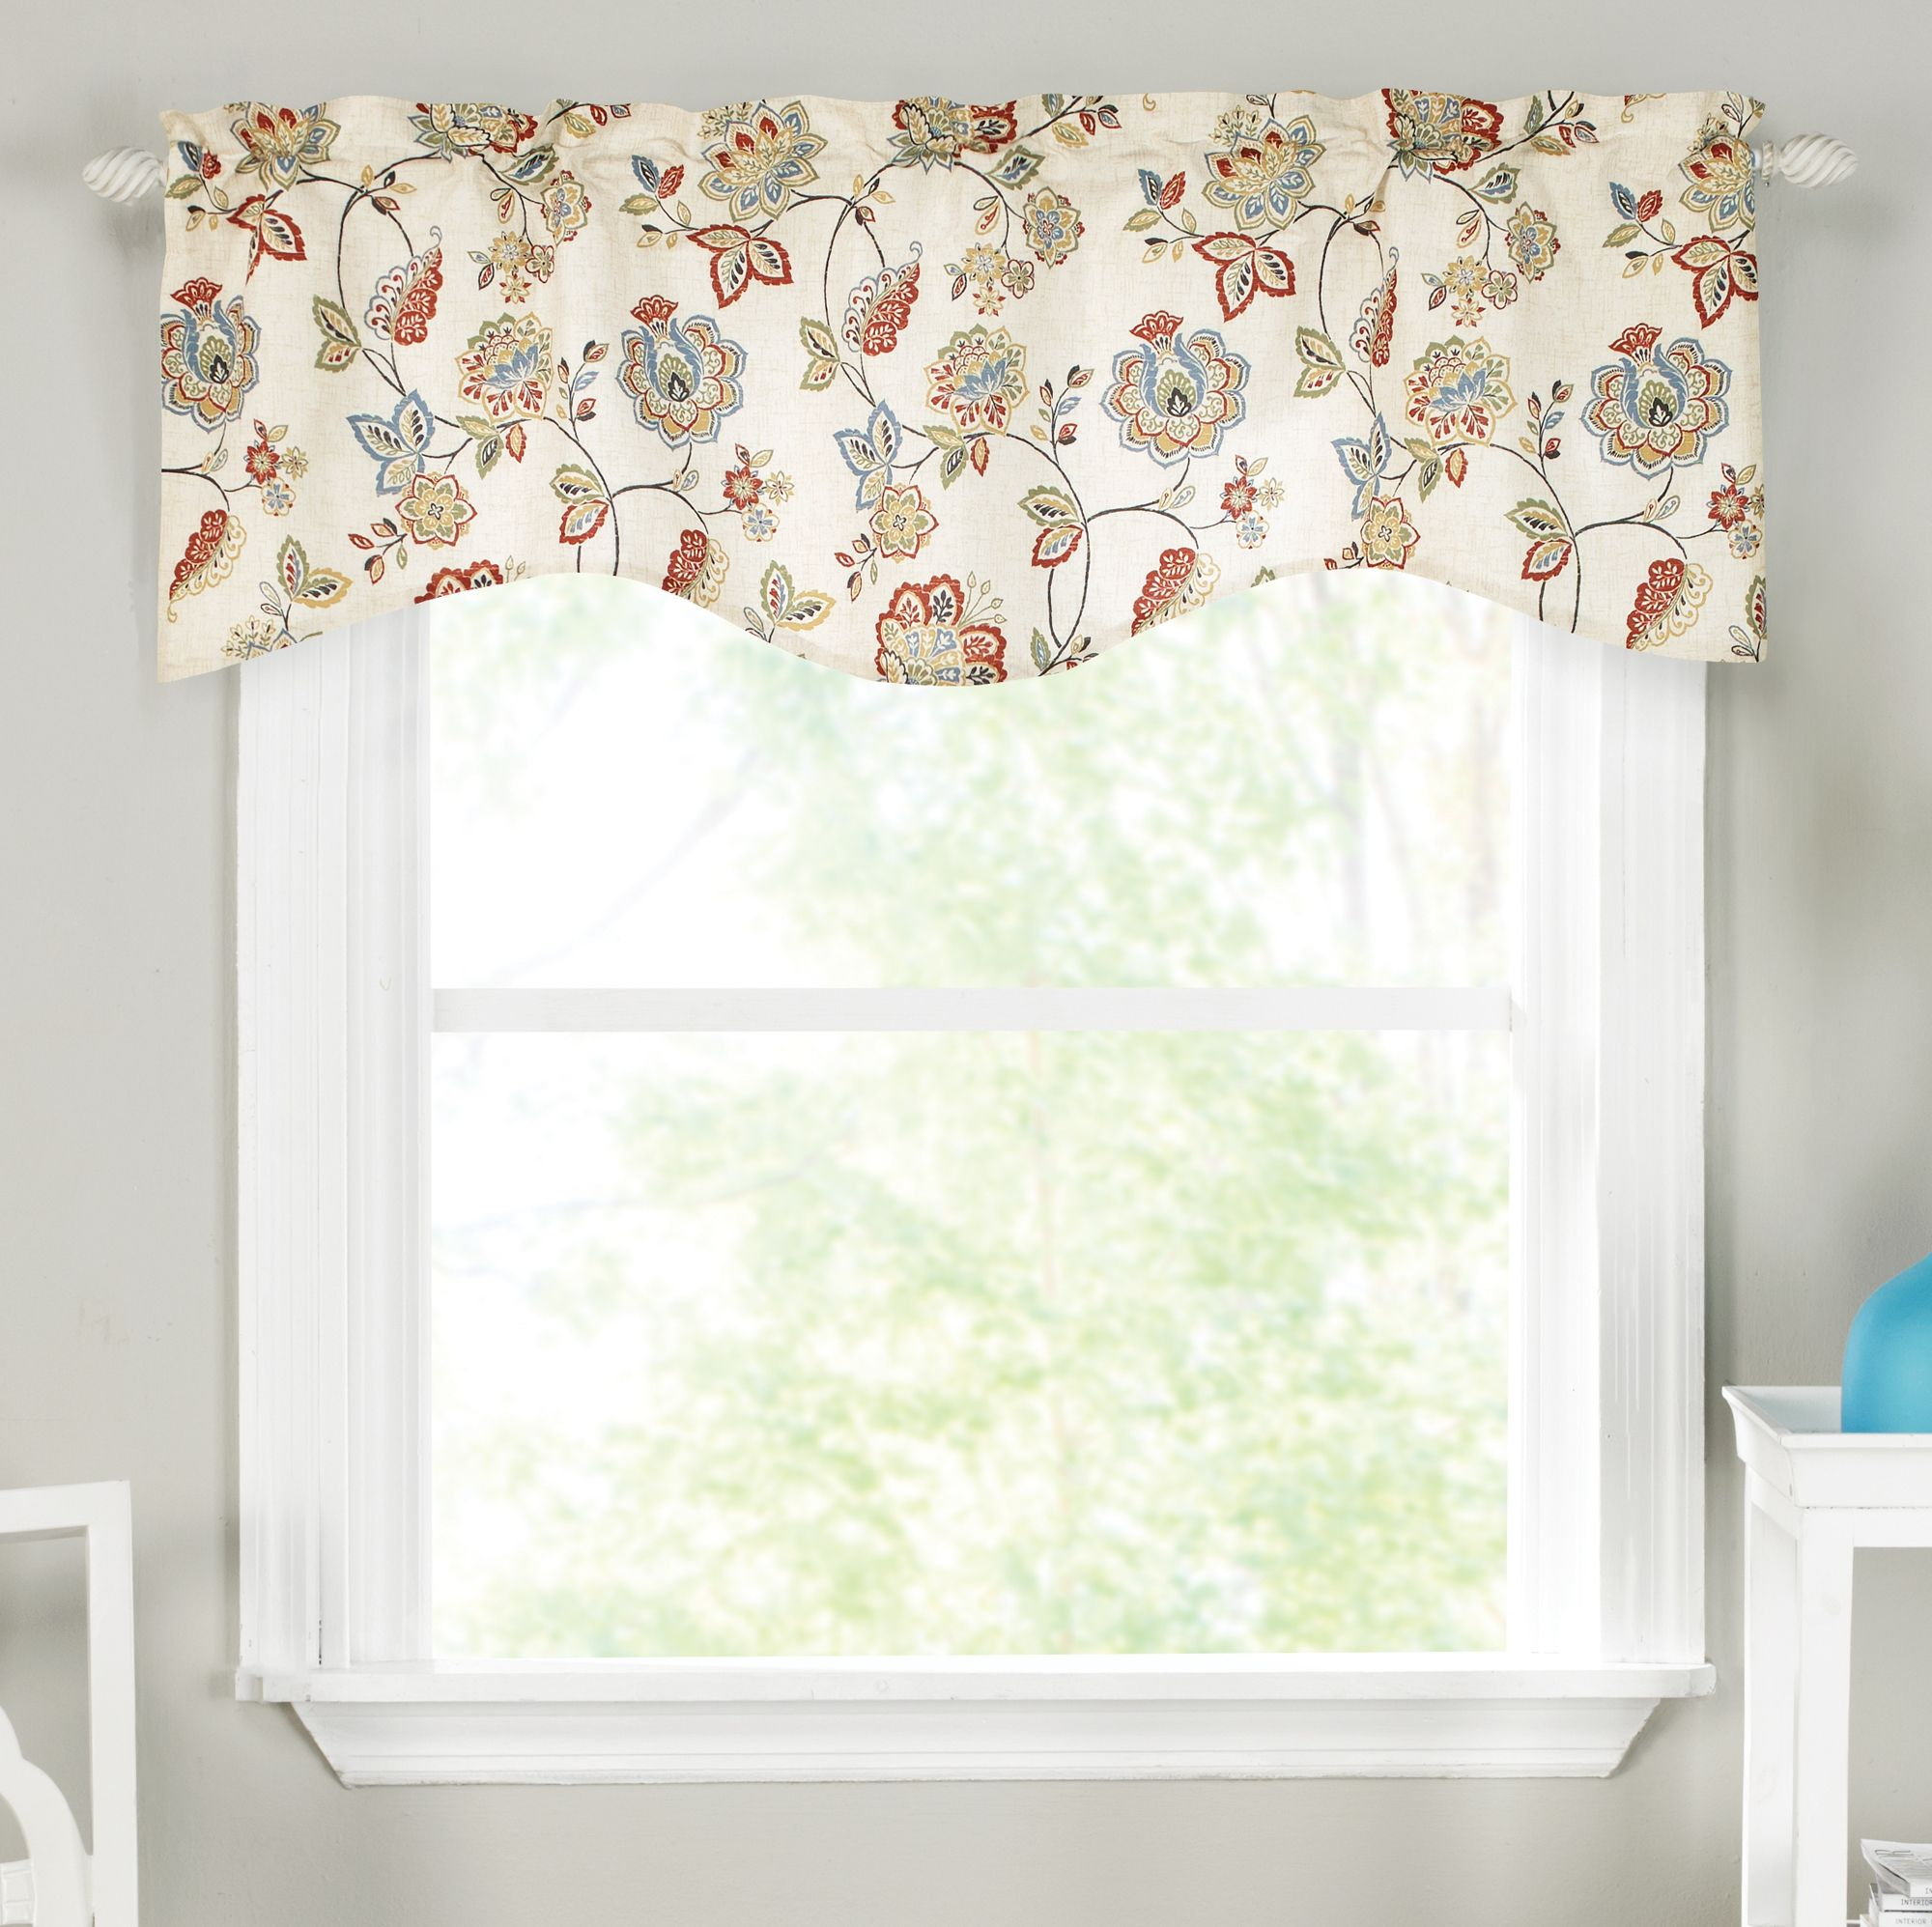 Colette Lined Scallop Valance Curtain Curtain Bath Outlet